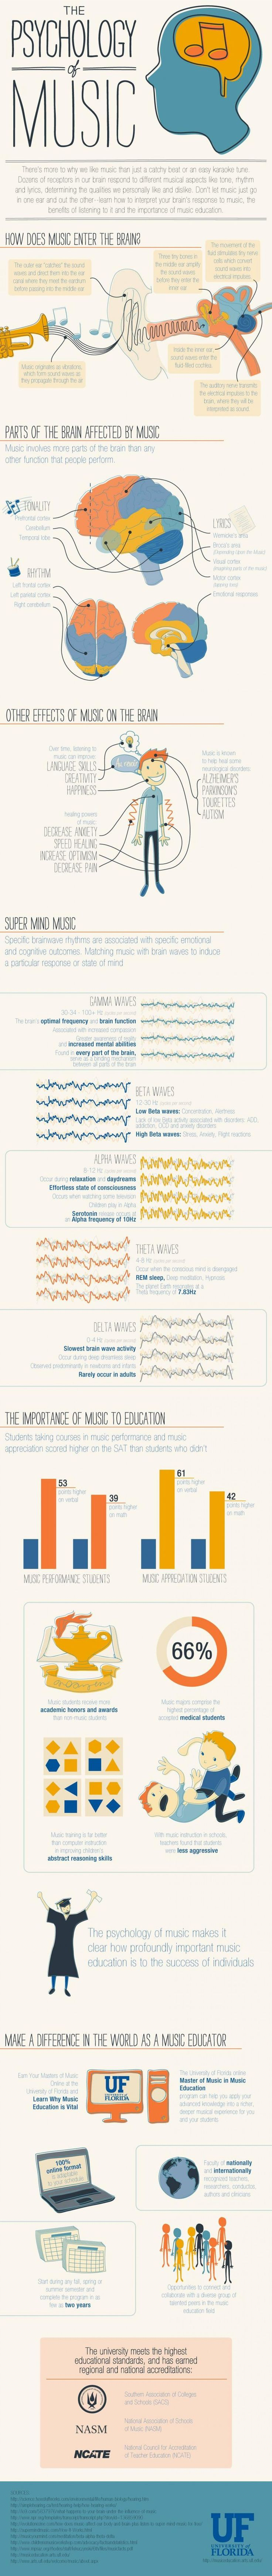 The University of Florida put together this infographic on the Psychology behind music. According to the graphic, music actually involves more parts of the brain than any other human function. It also includes some interesting notes about the correlation between brainwaves and emotions.